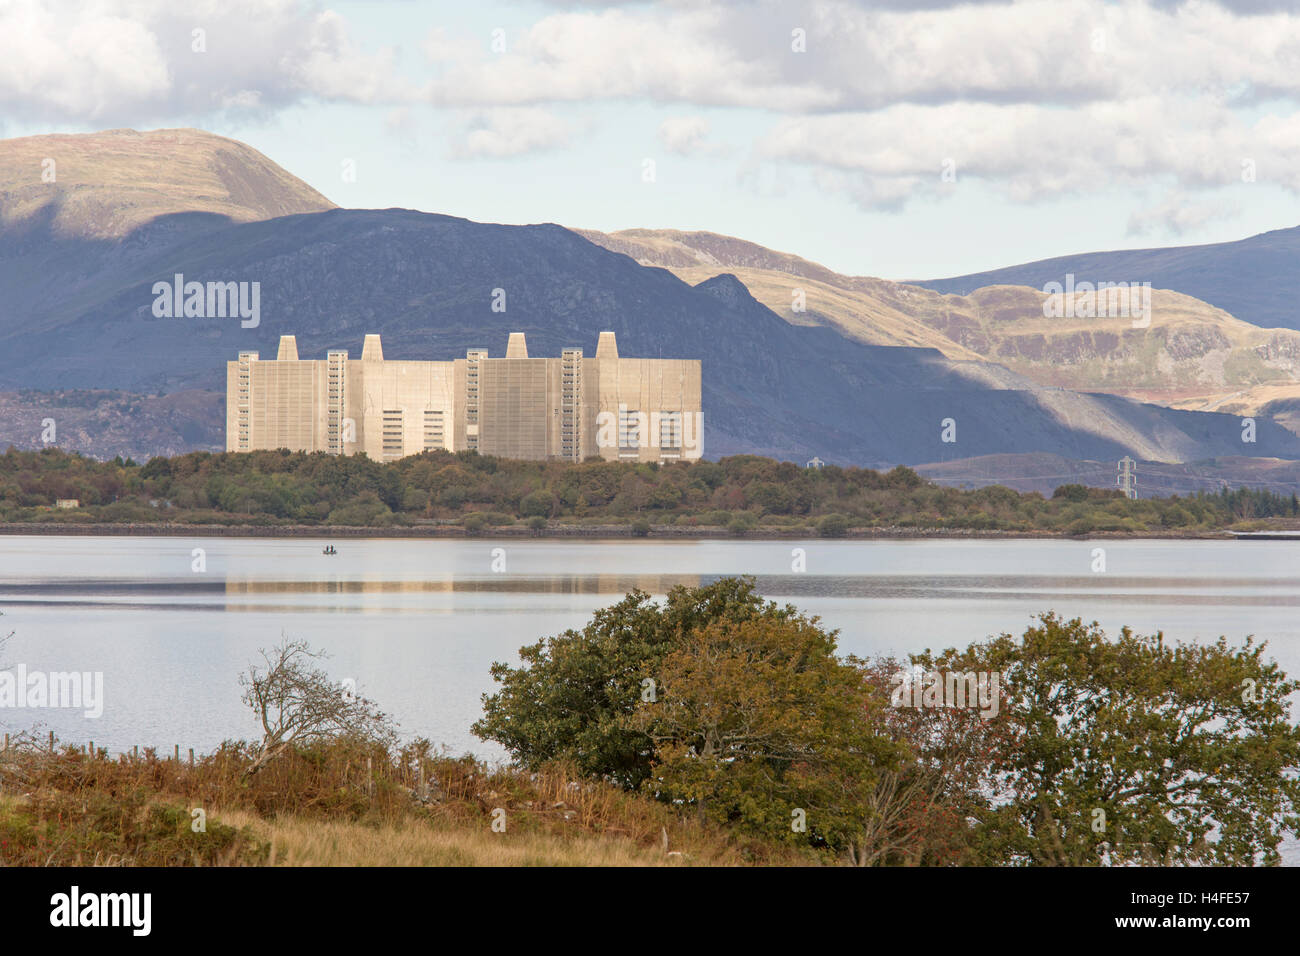 The decommissioned Trawsfynydd Nuclear Power Station, Snowdonia National Park,  Gwynedd, Wales. Stock Photo